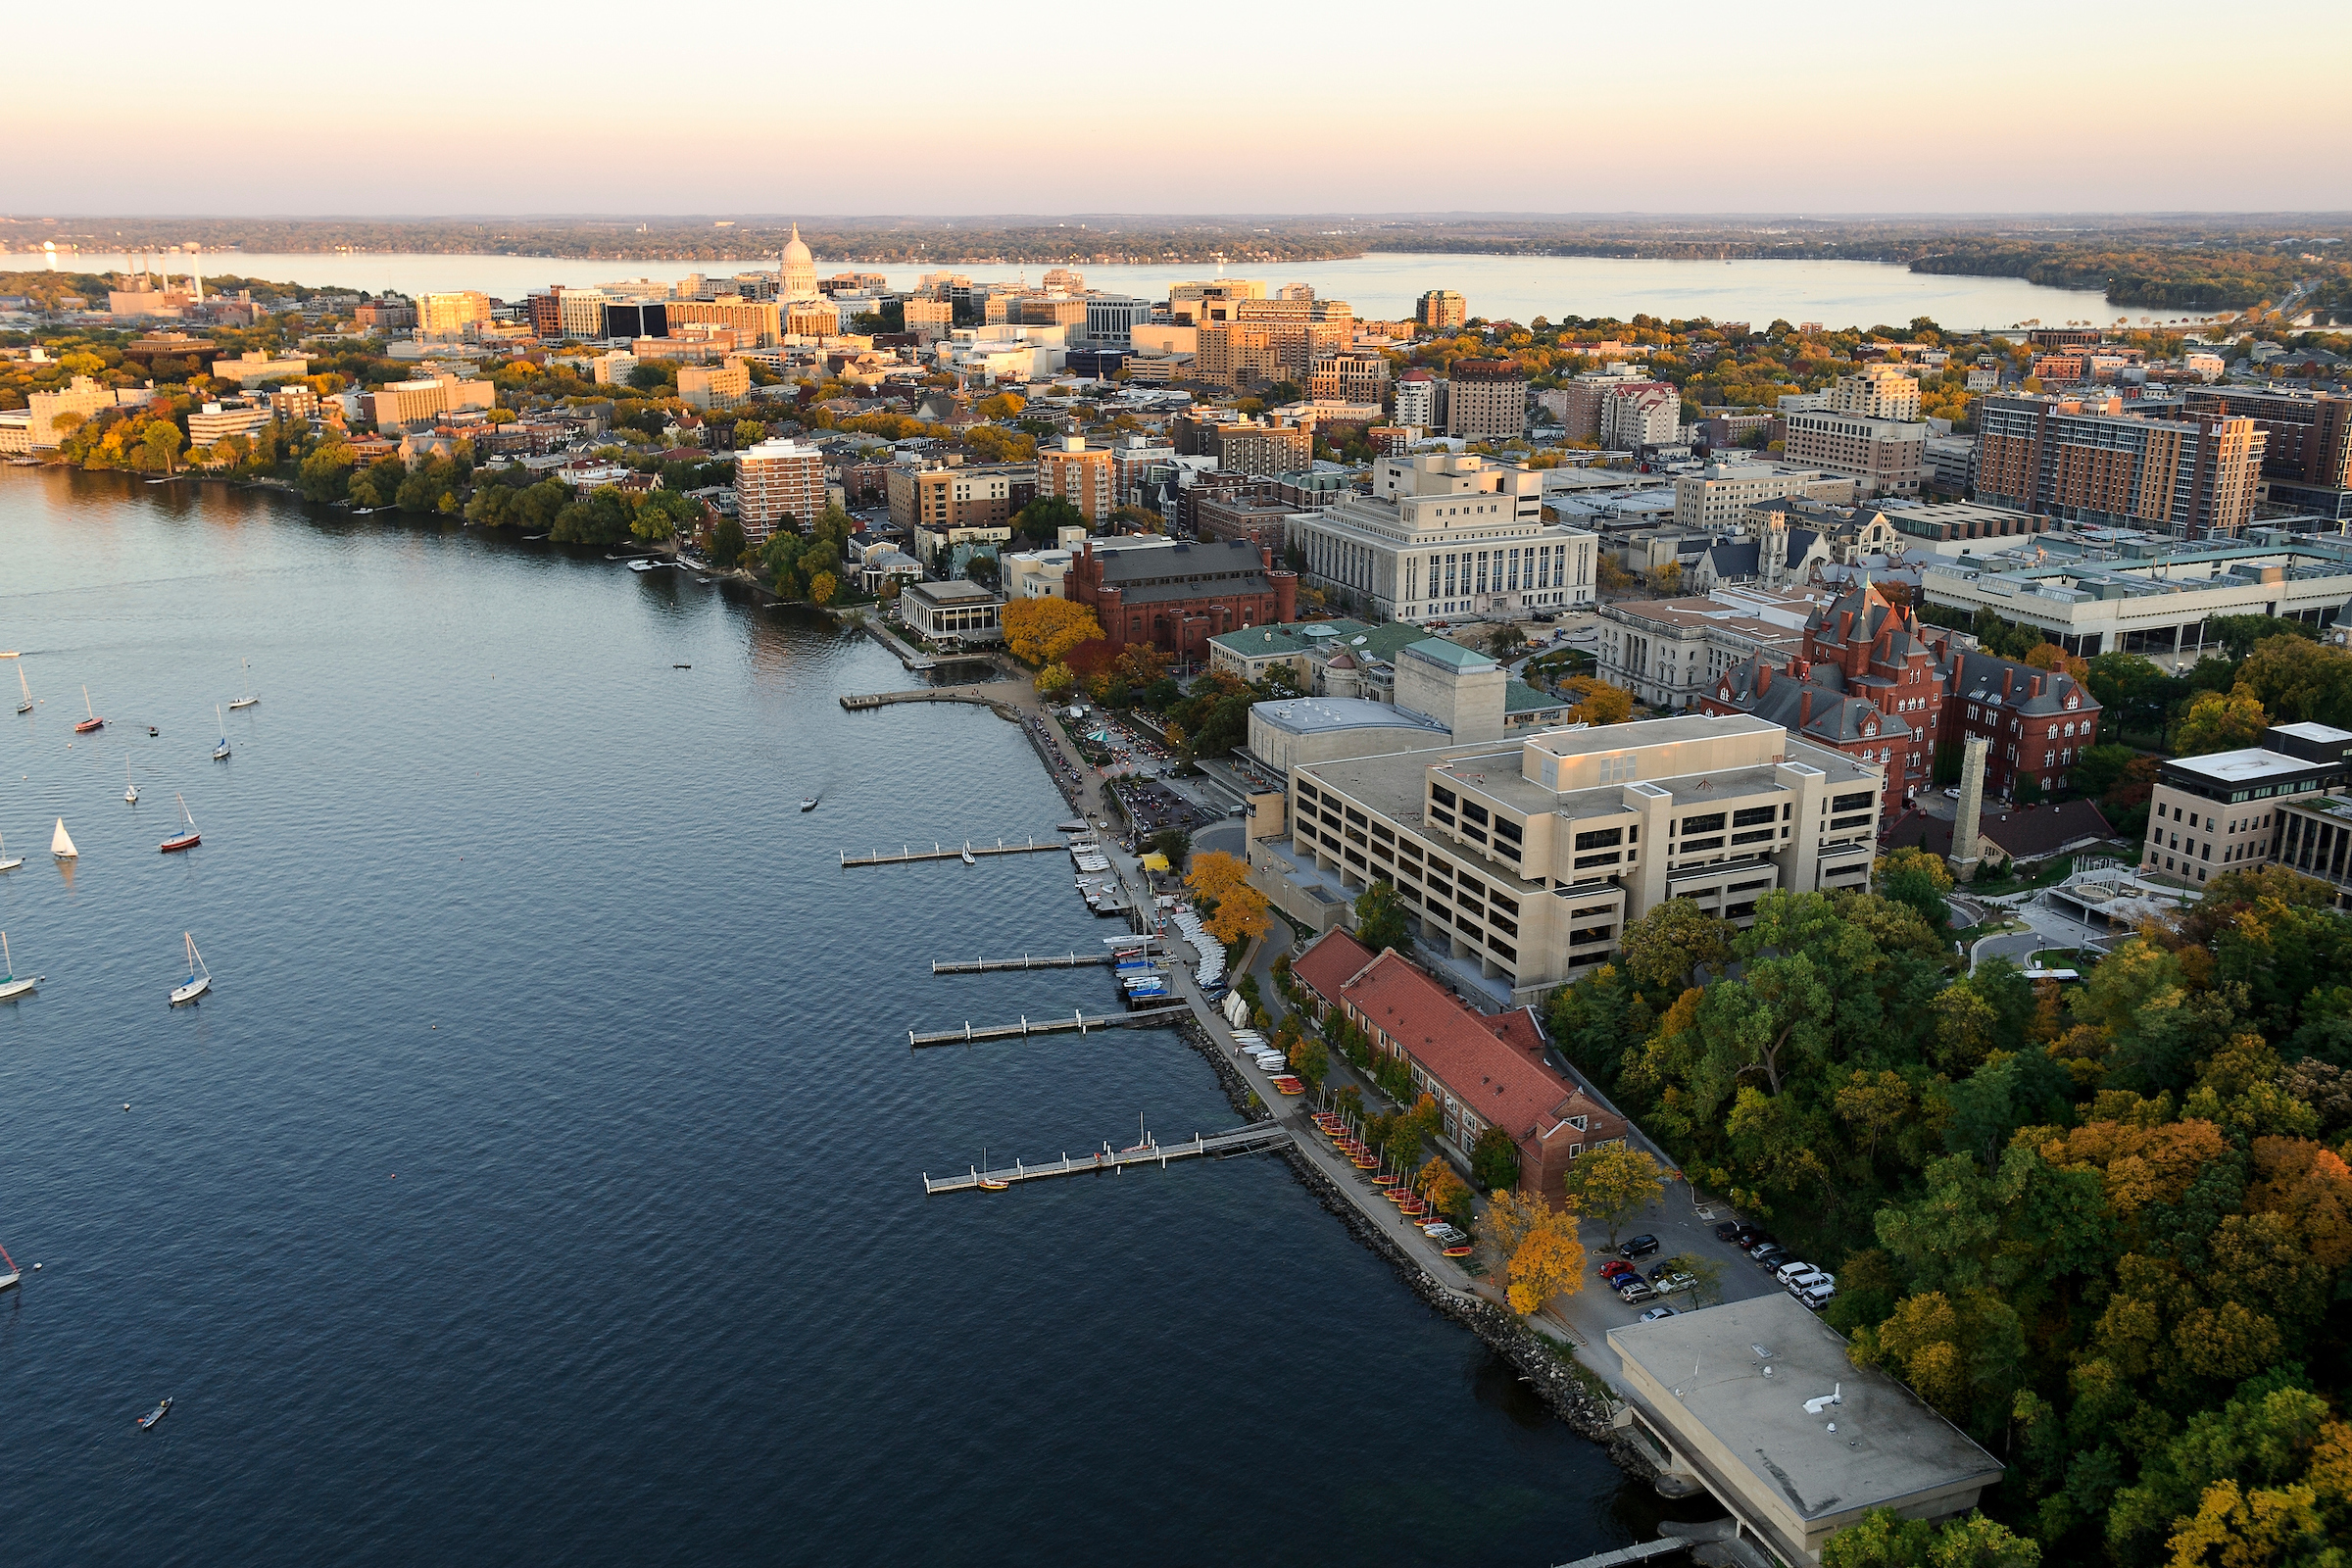 The Lake Mendota shoreline is pictured in an aerial view of the UW-Madison campus.